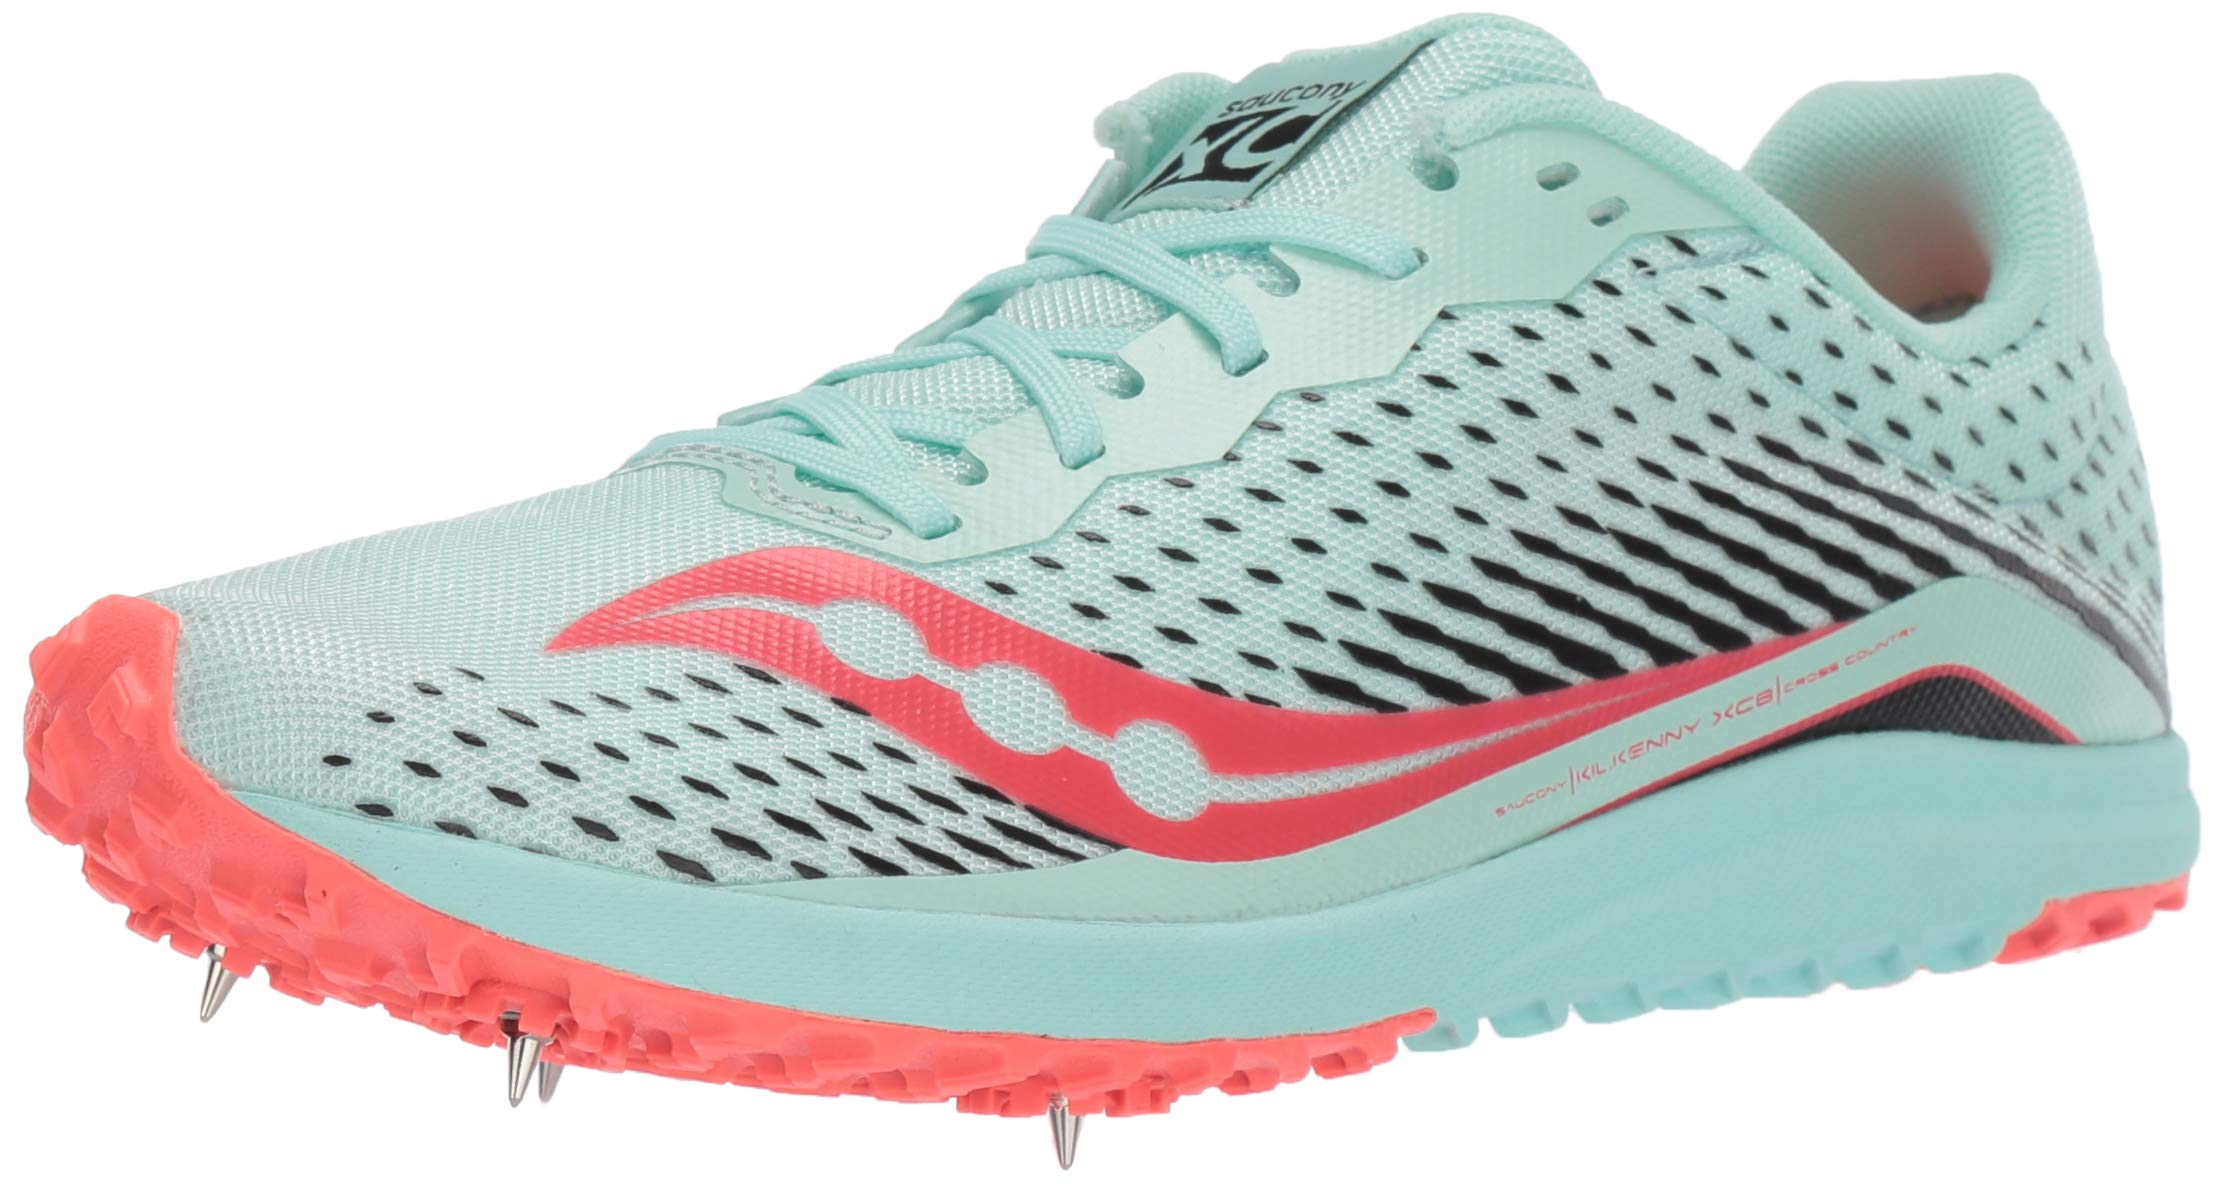 Saucony Women's Kilkenny XC8 Track Shoe, Mint/Vizi Coral, 11.5 Medium US by Saucony